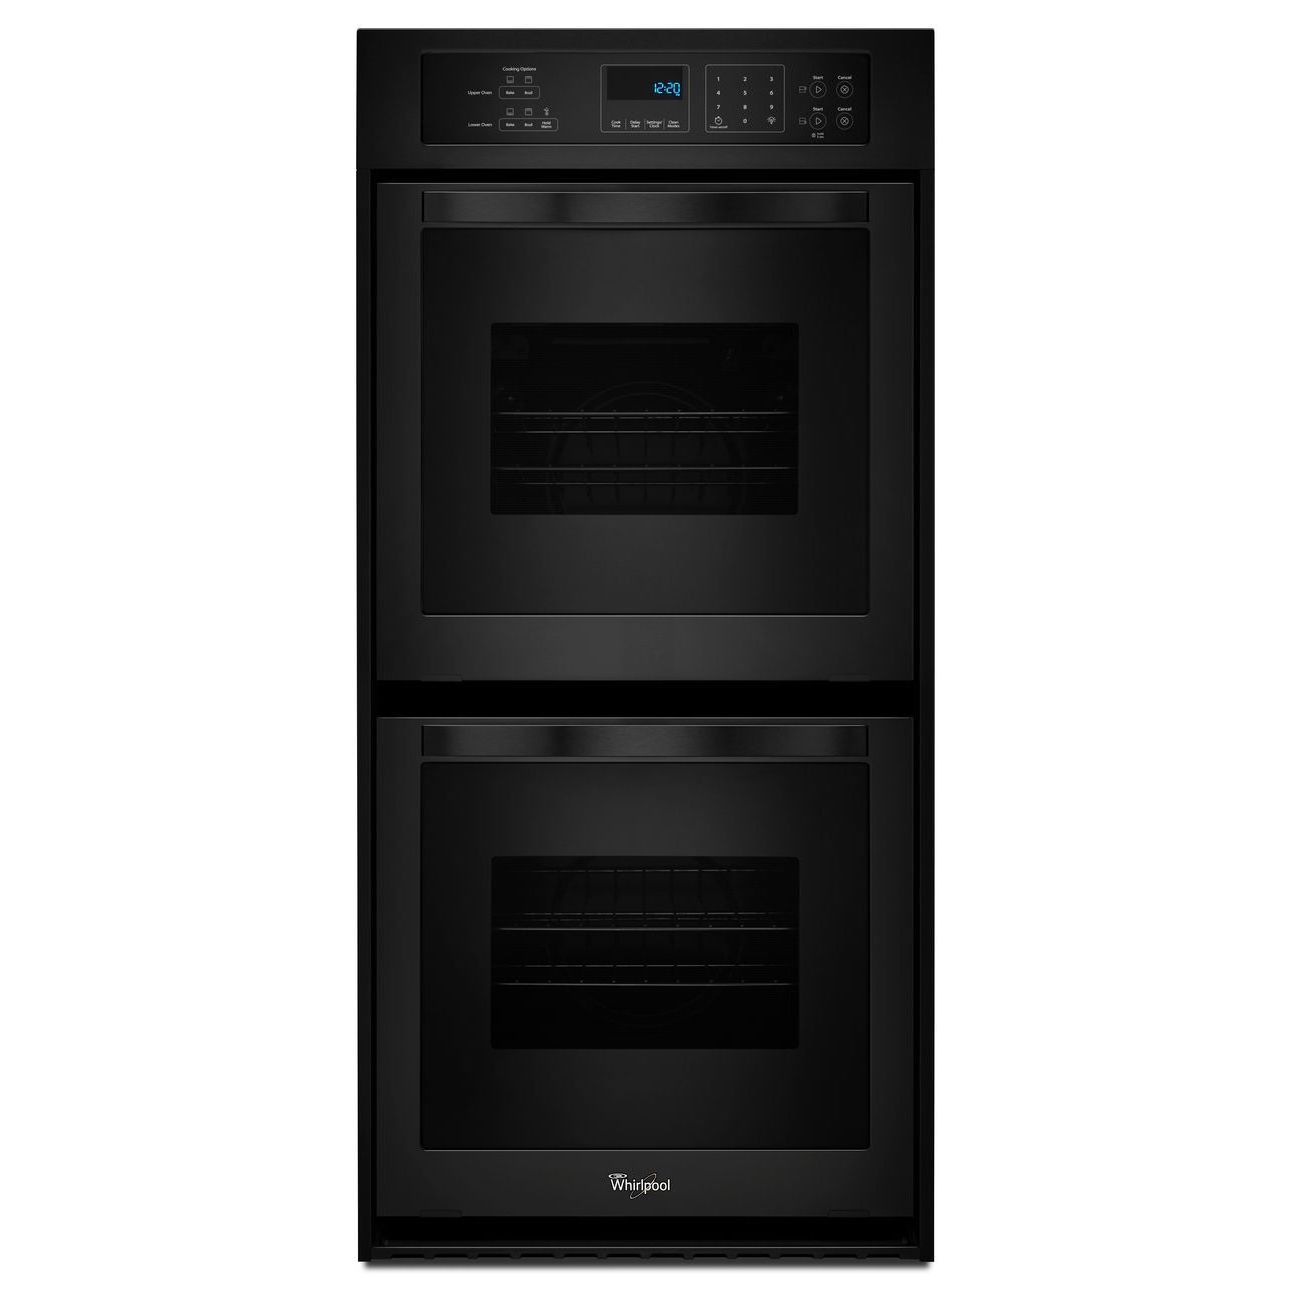 Whirlpool 24 Inch Double Electric Wall Oven